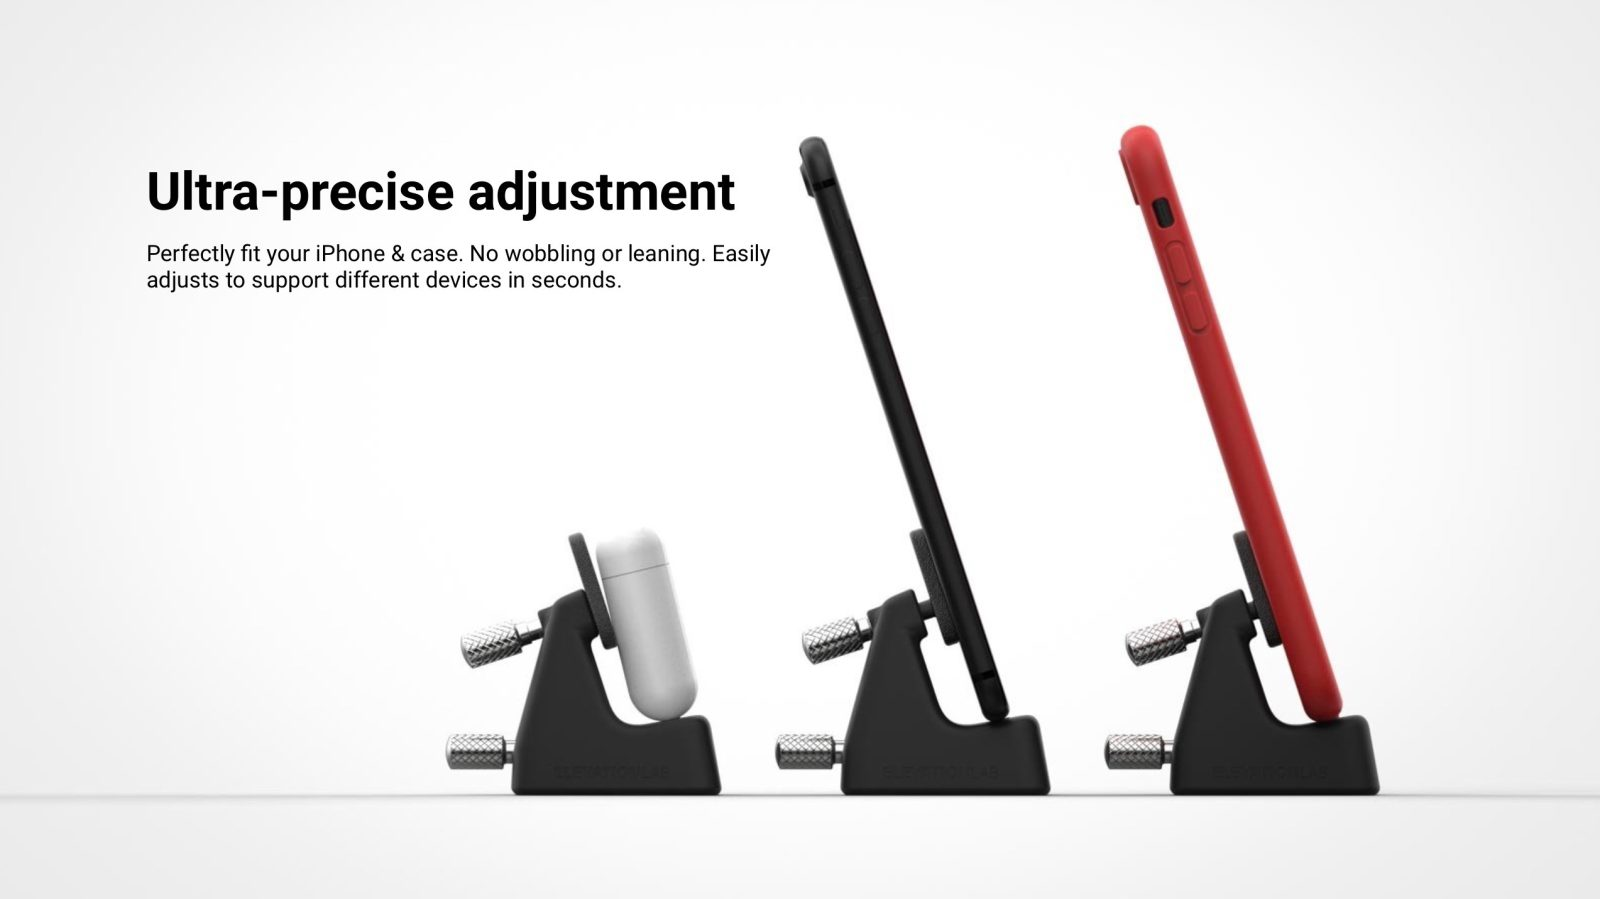 New ElevationDock 4 for iPhone and iPad features adjustable stainless steel design and more